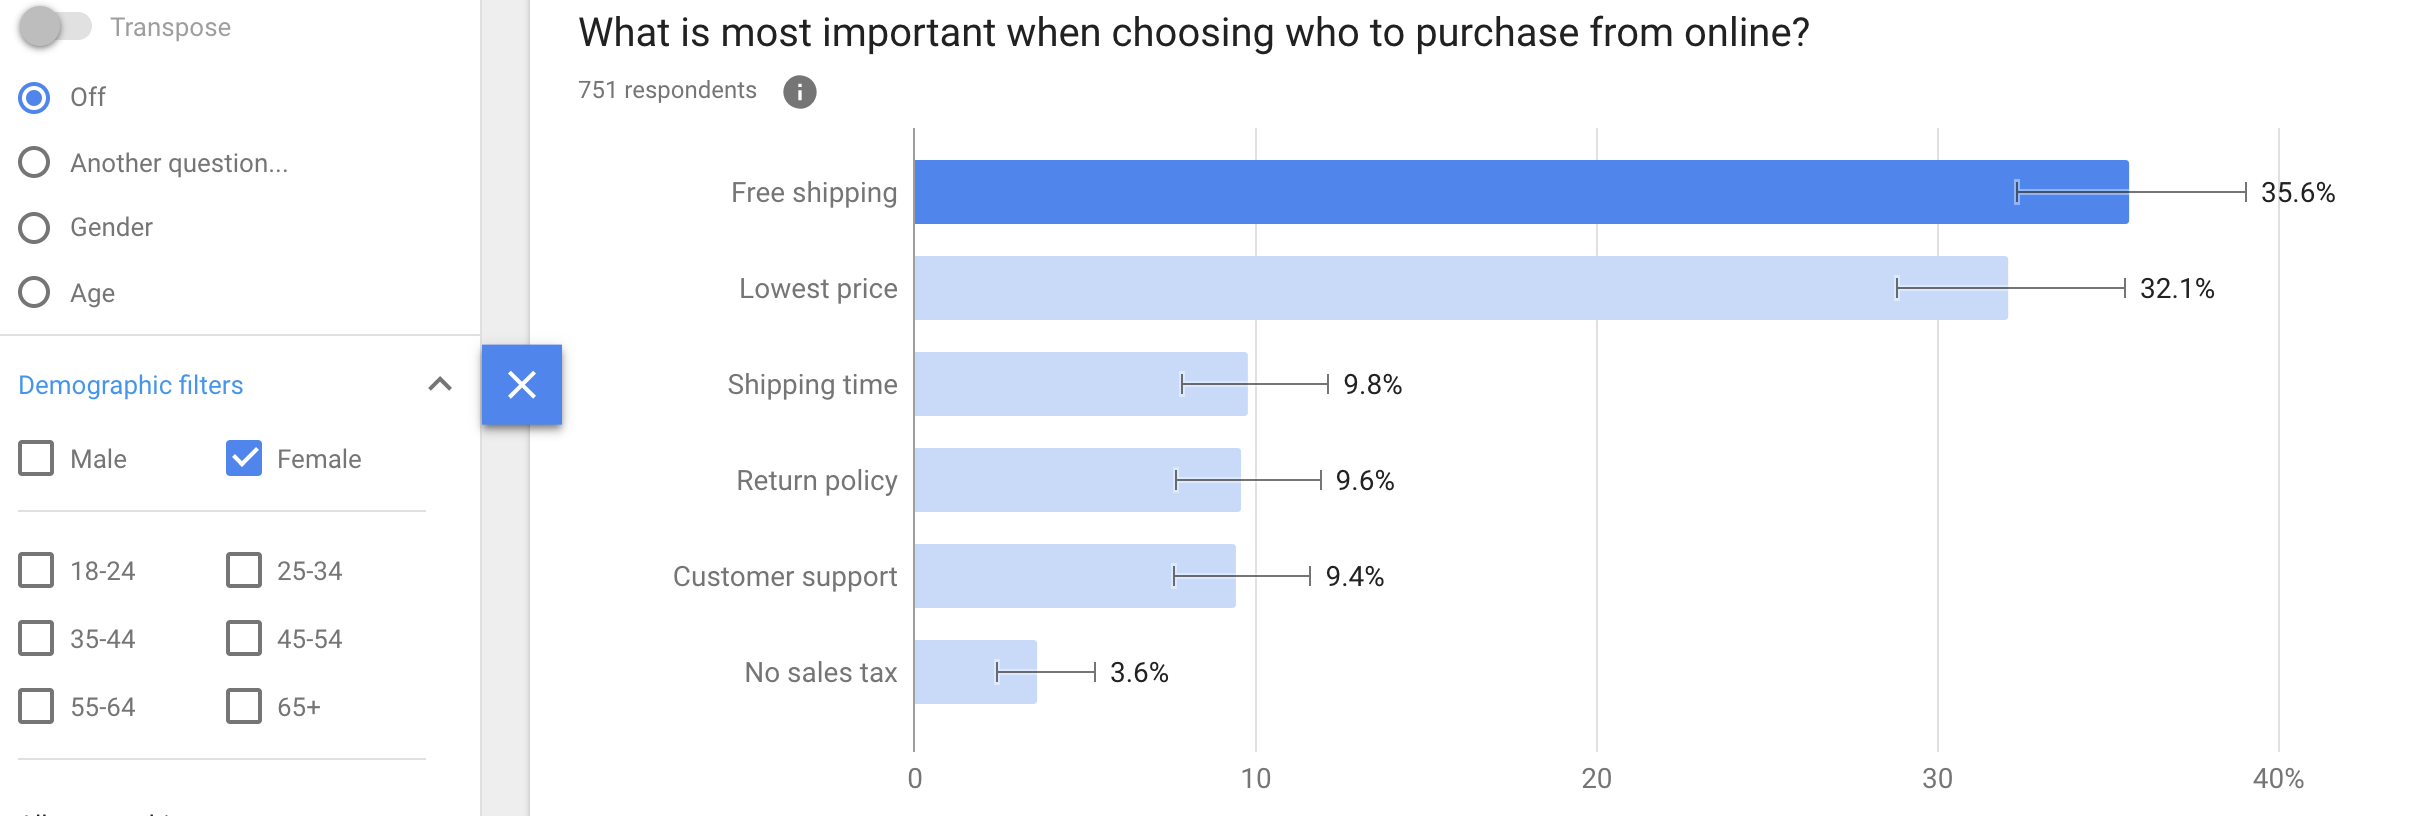 What is most important when choosing who to purchase from online? Demographic (Female)